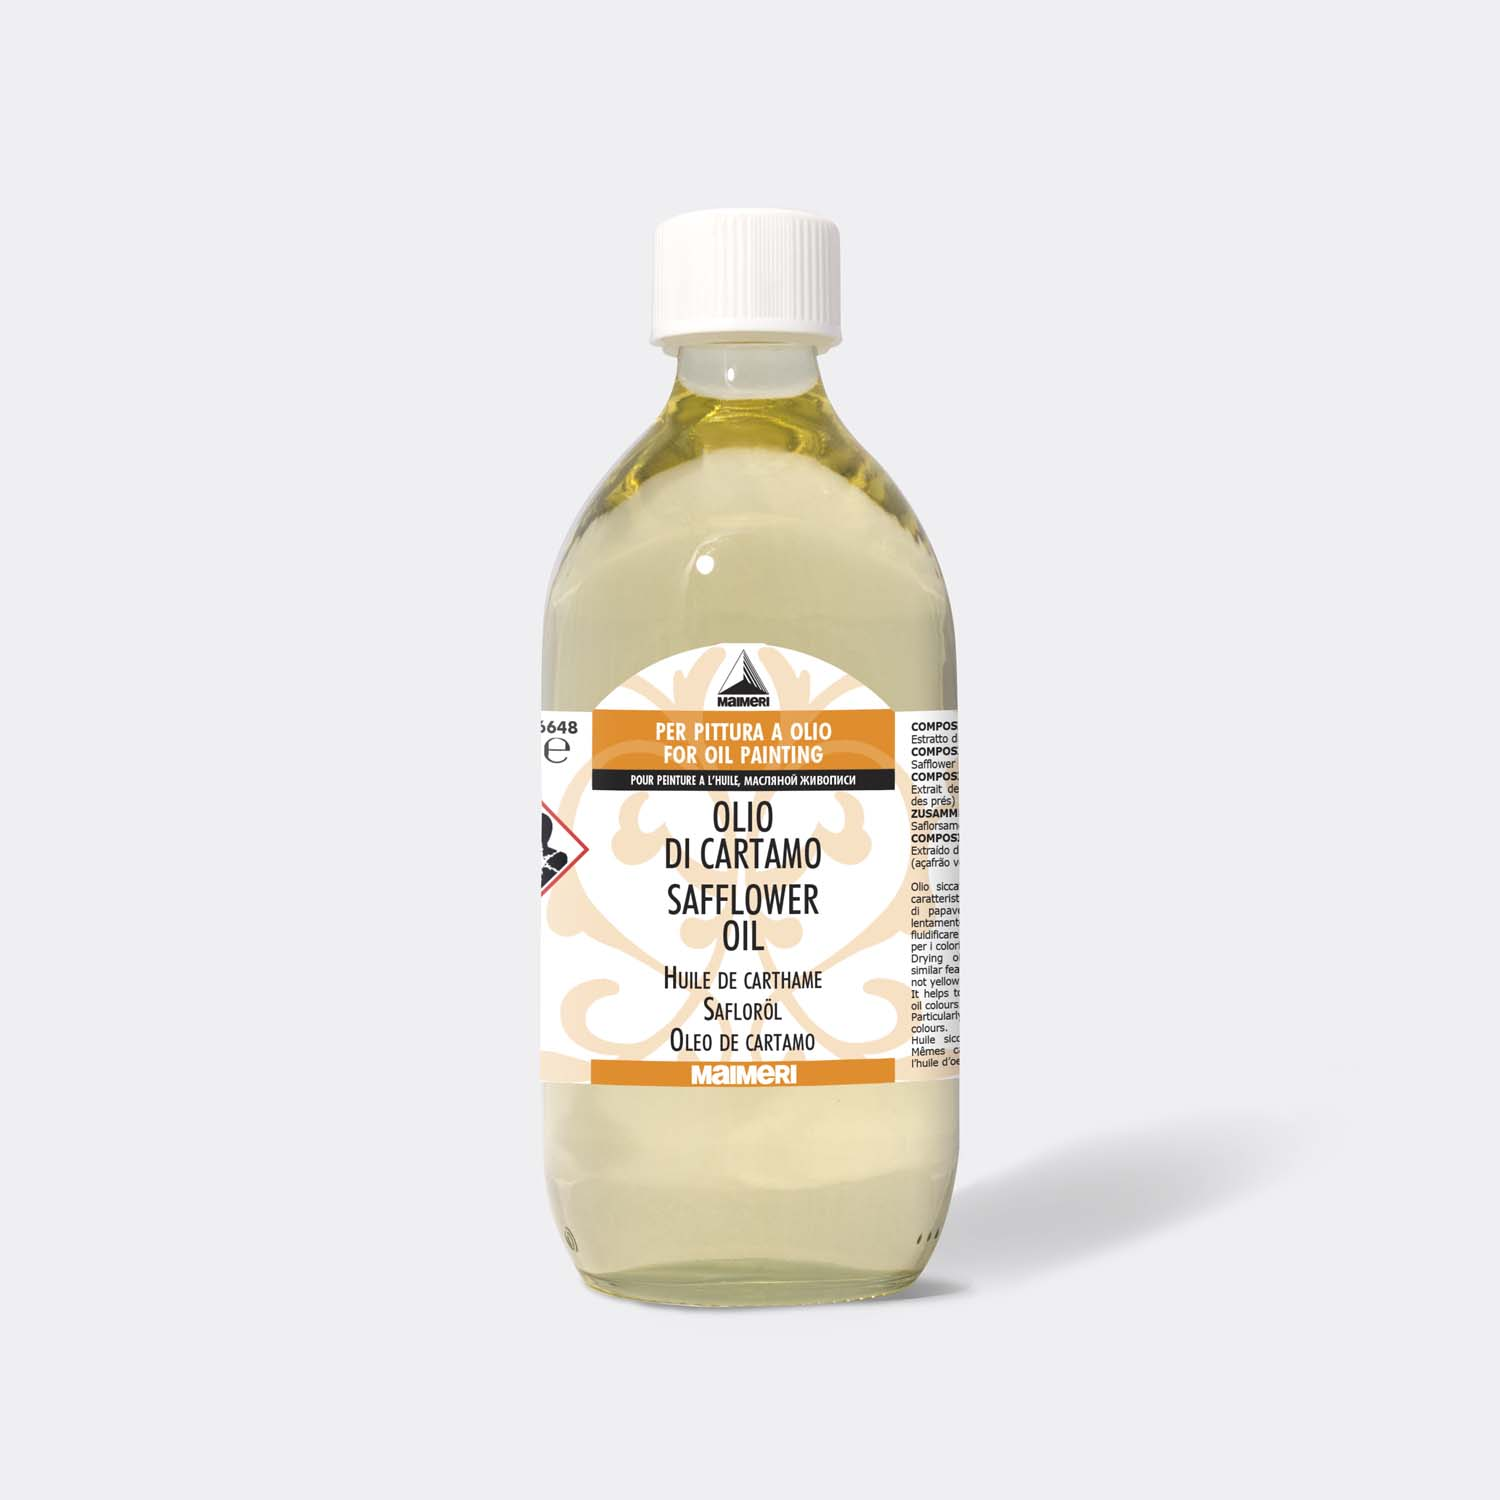 [오일] 648 SAFFLOWER OIL